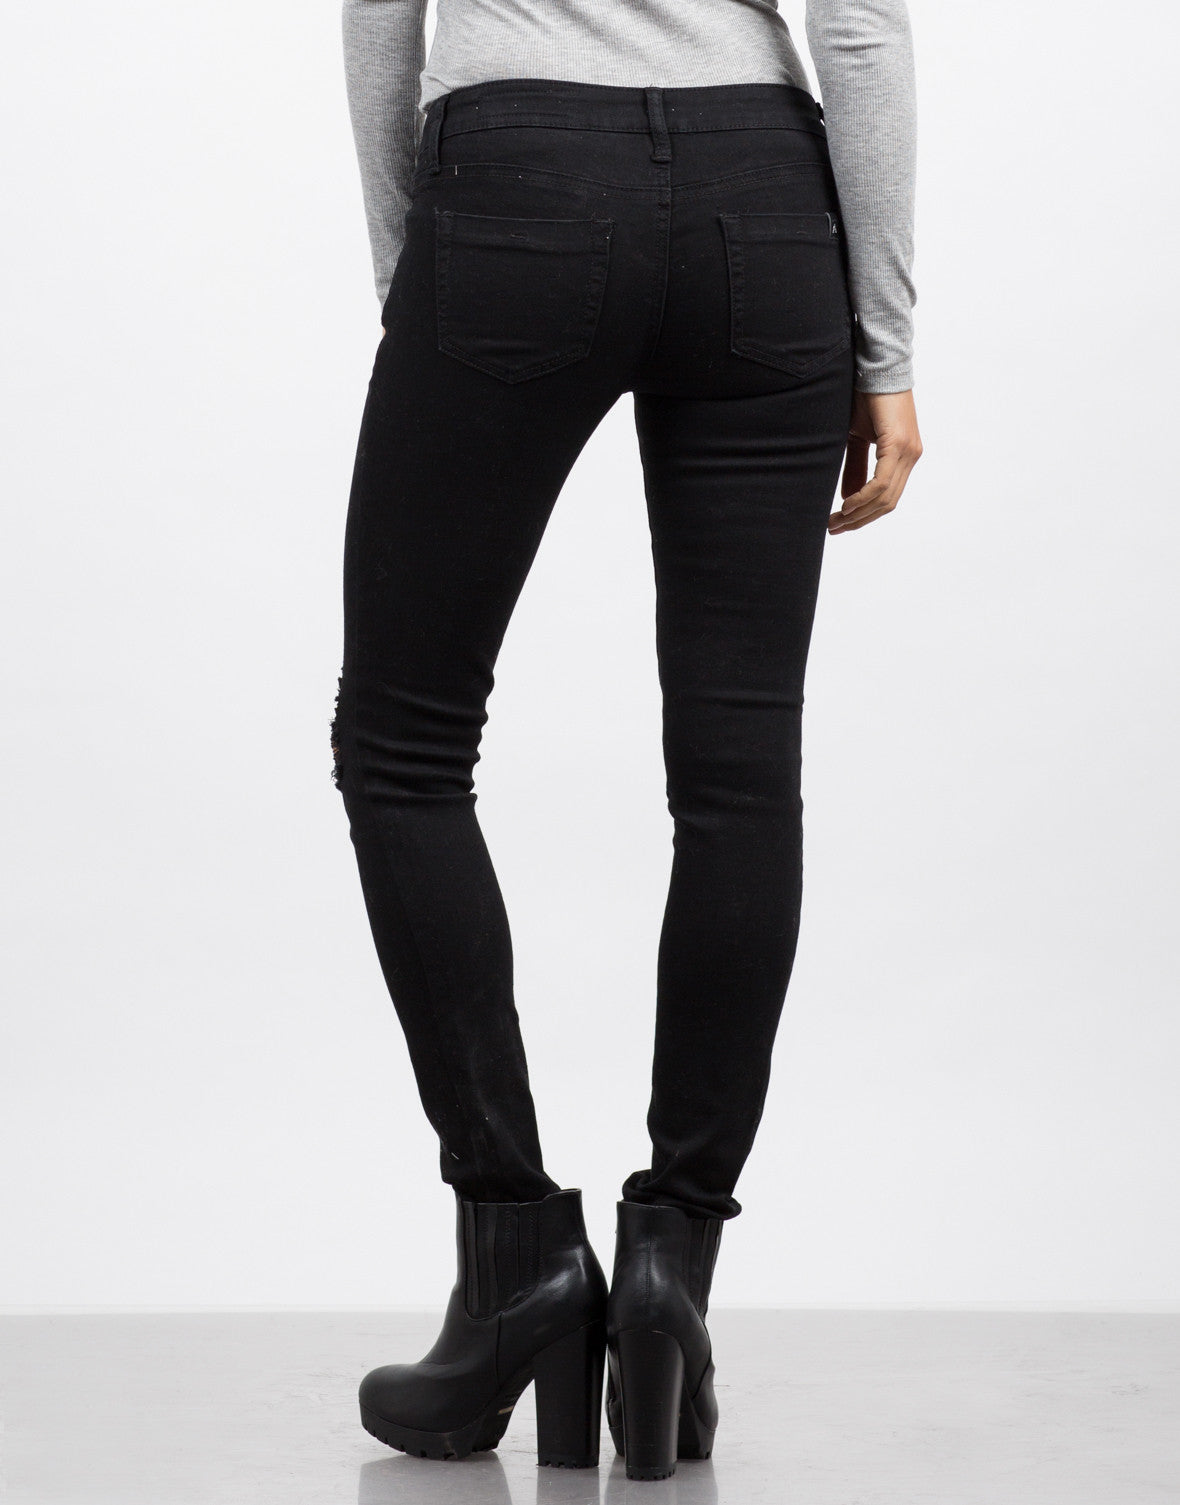 Back View of Destroyed Black Skinny Jeans